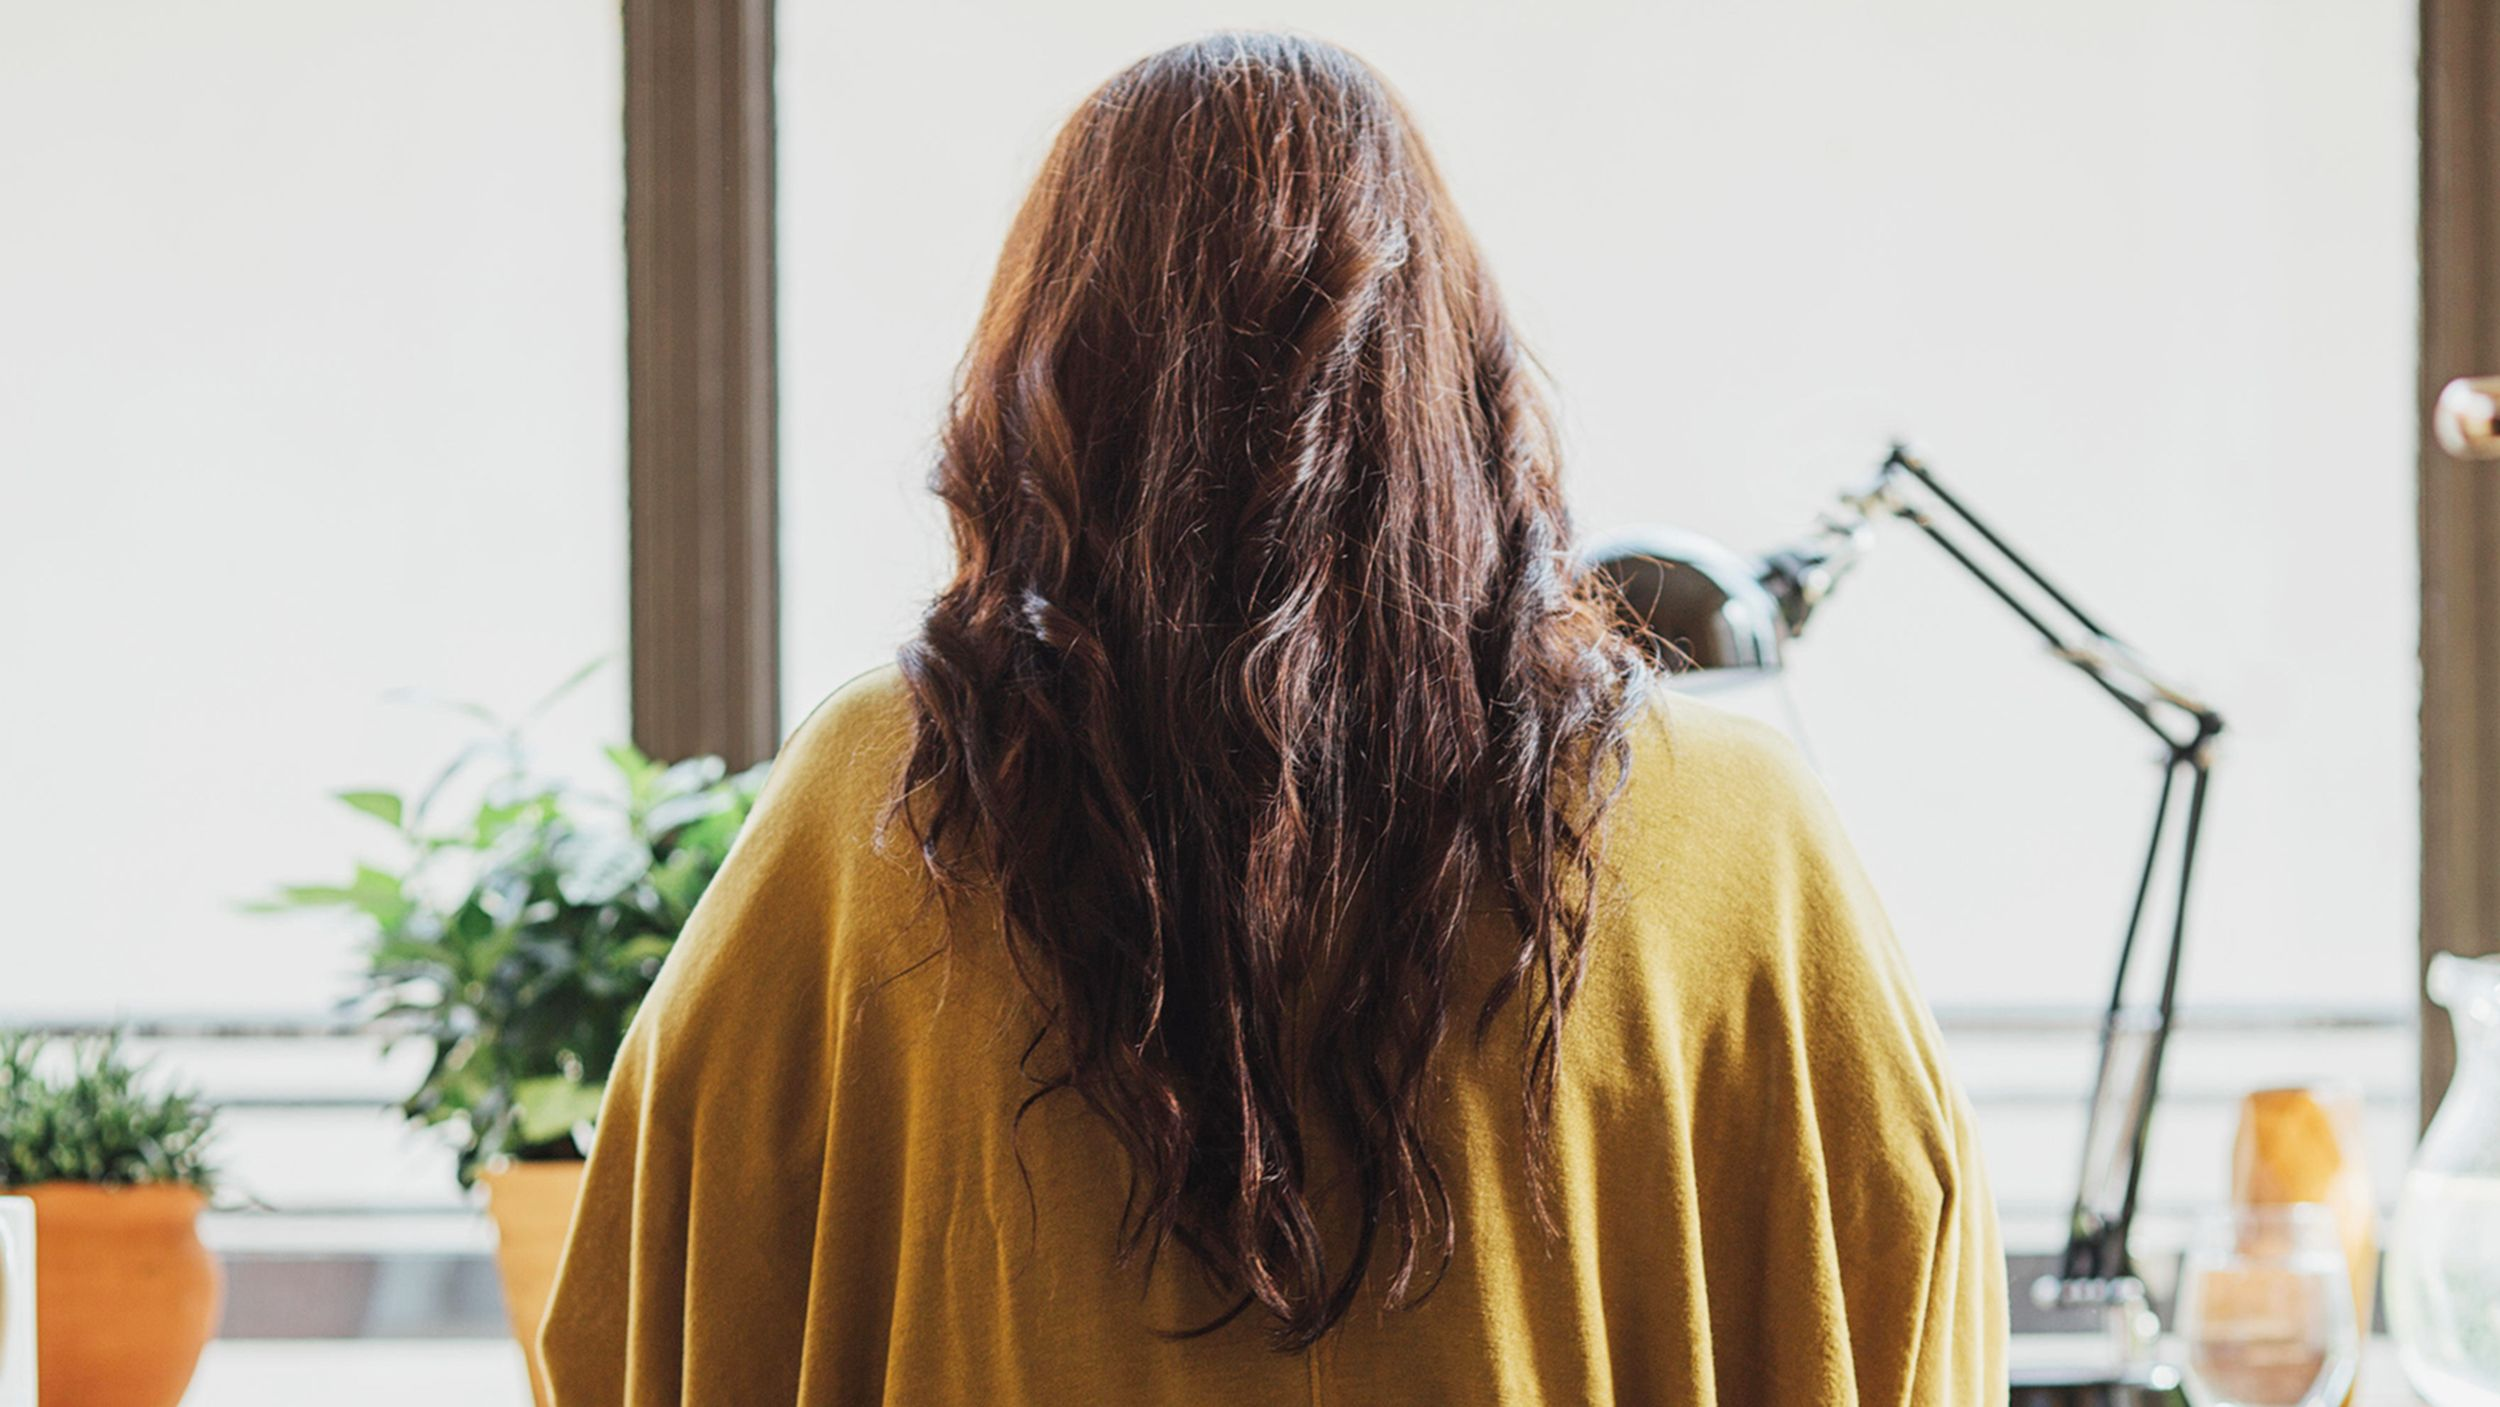 5 foods to eat for beautiful, shiny hair